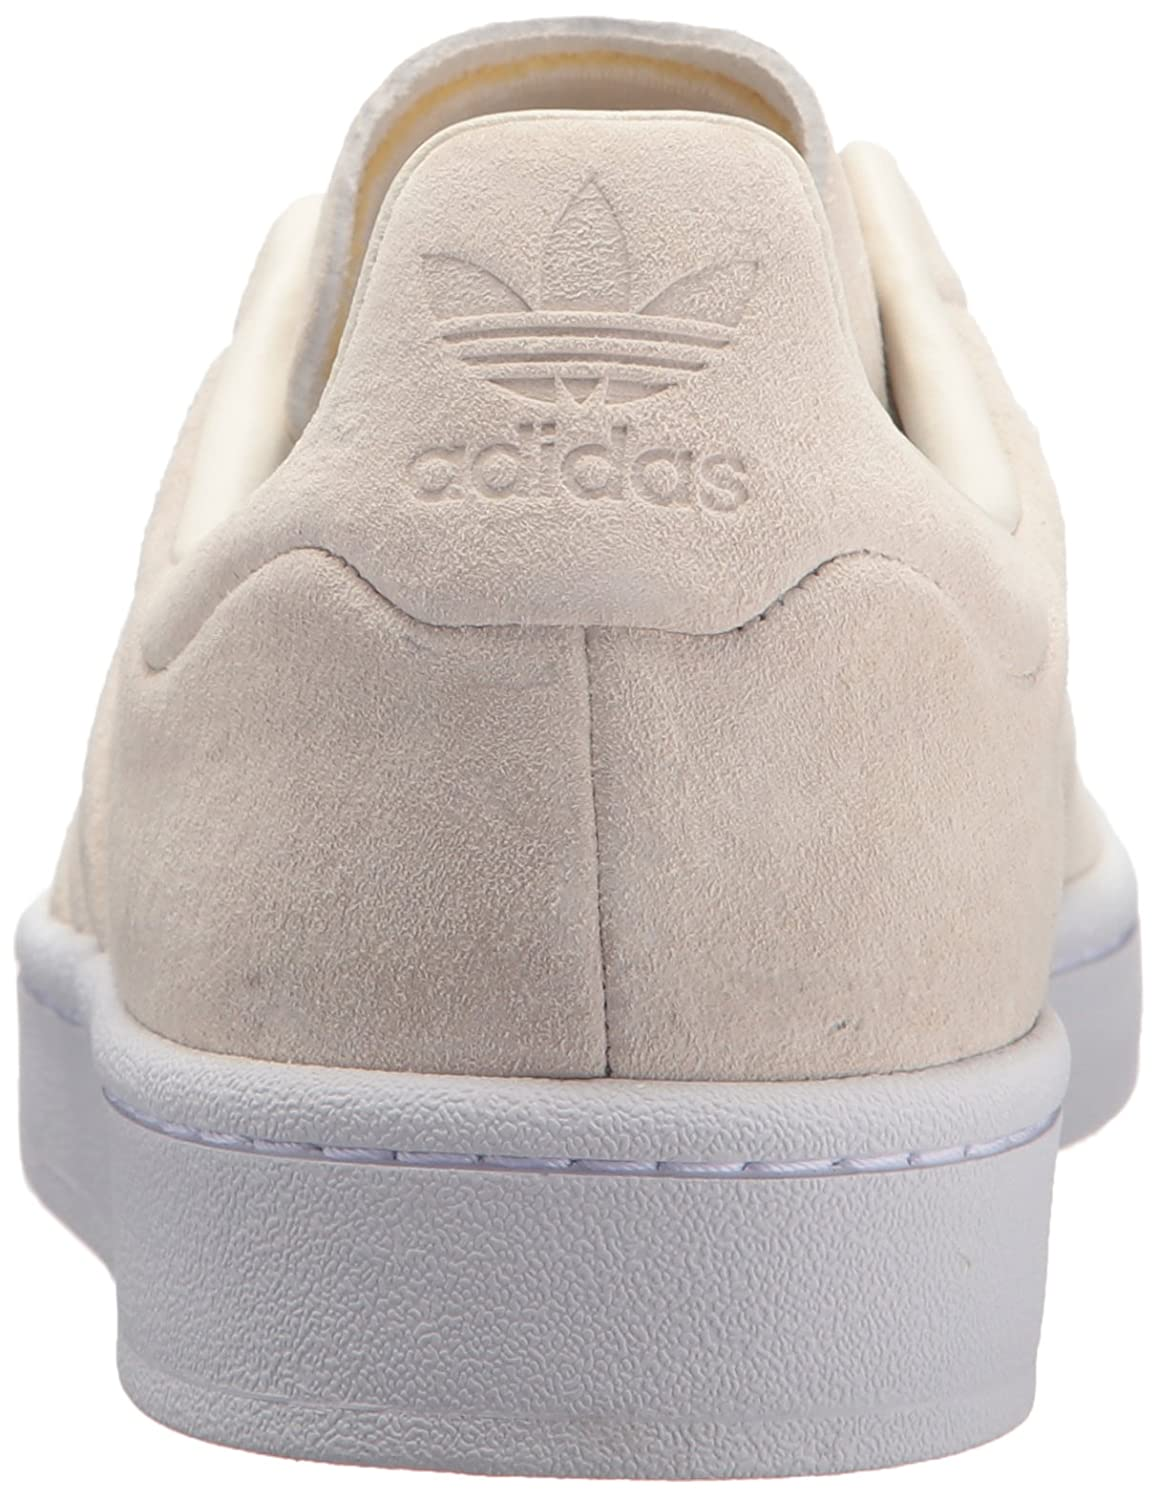 Adidas-Campus-Men-039-s-Casual-Fashion-Sneakers-Retro-Athletic-Shoes thumbnail 20